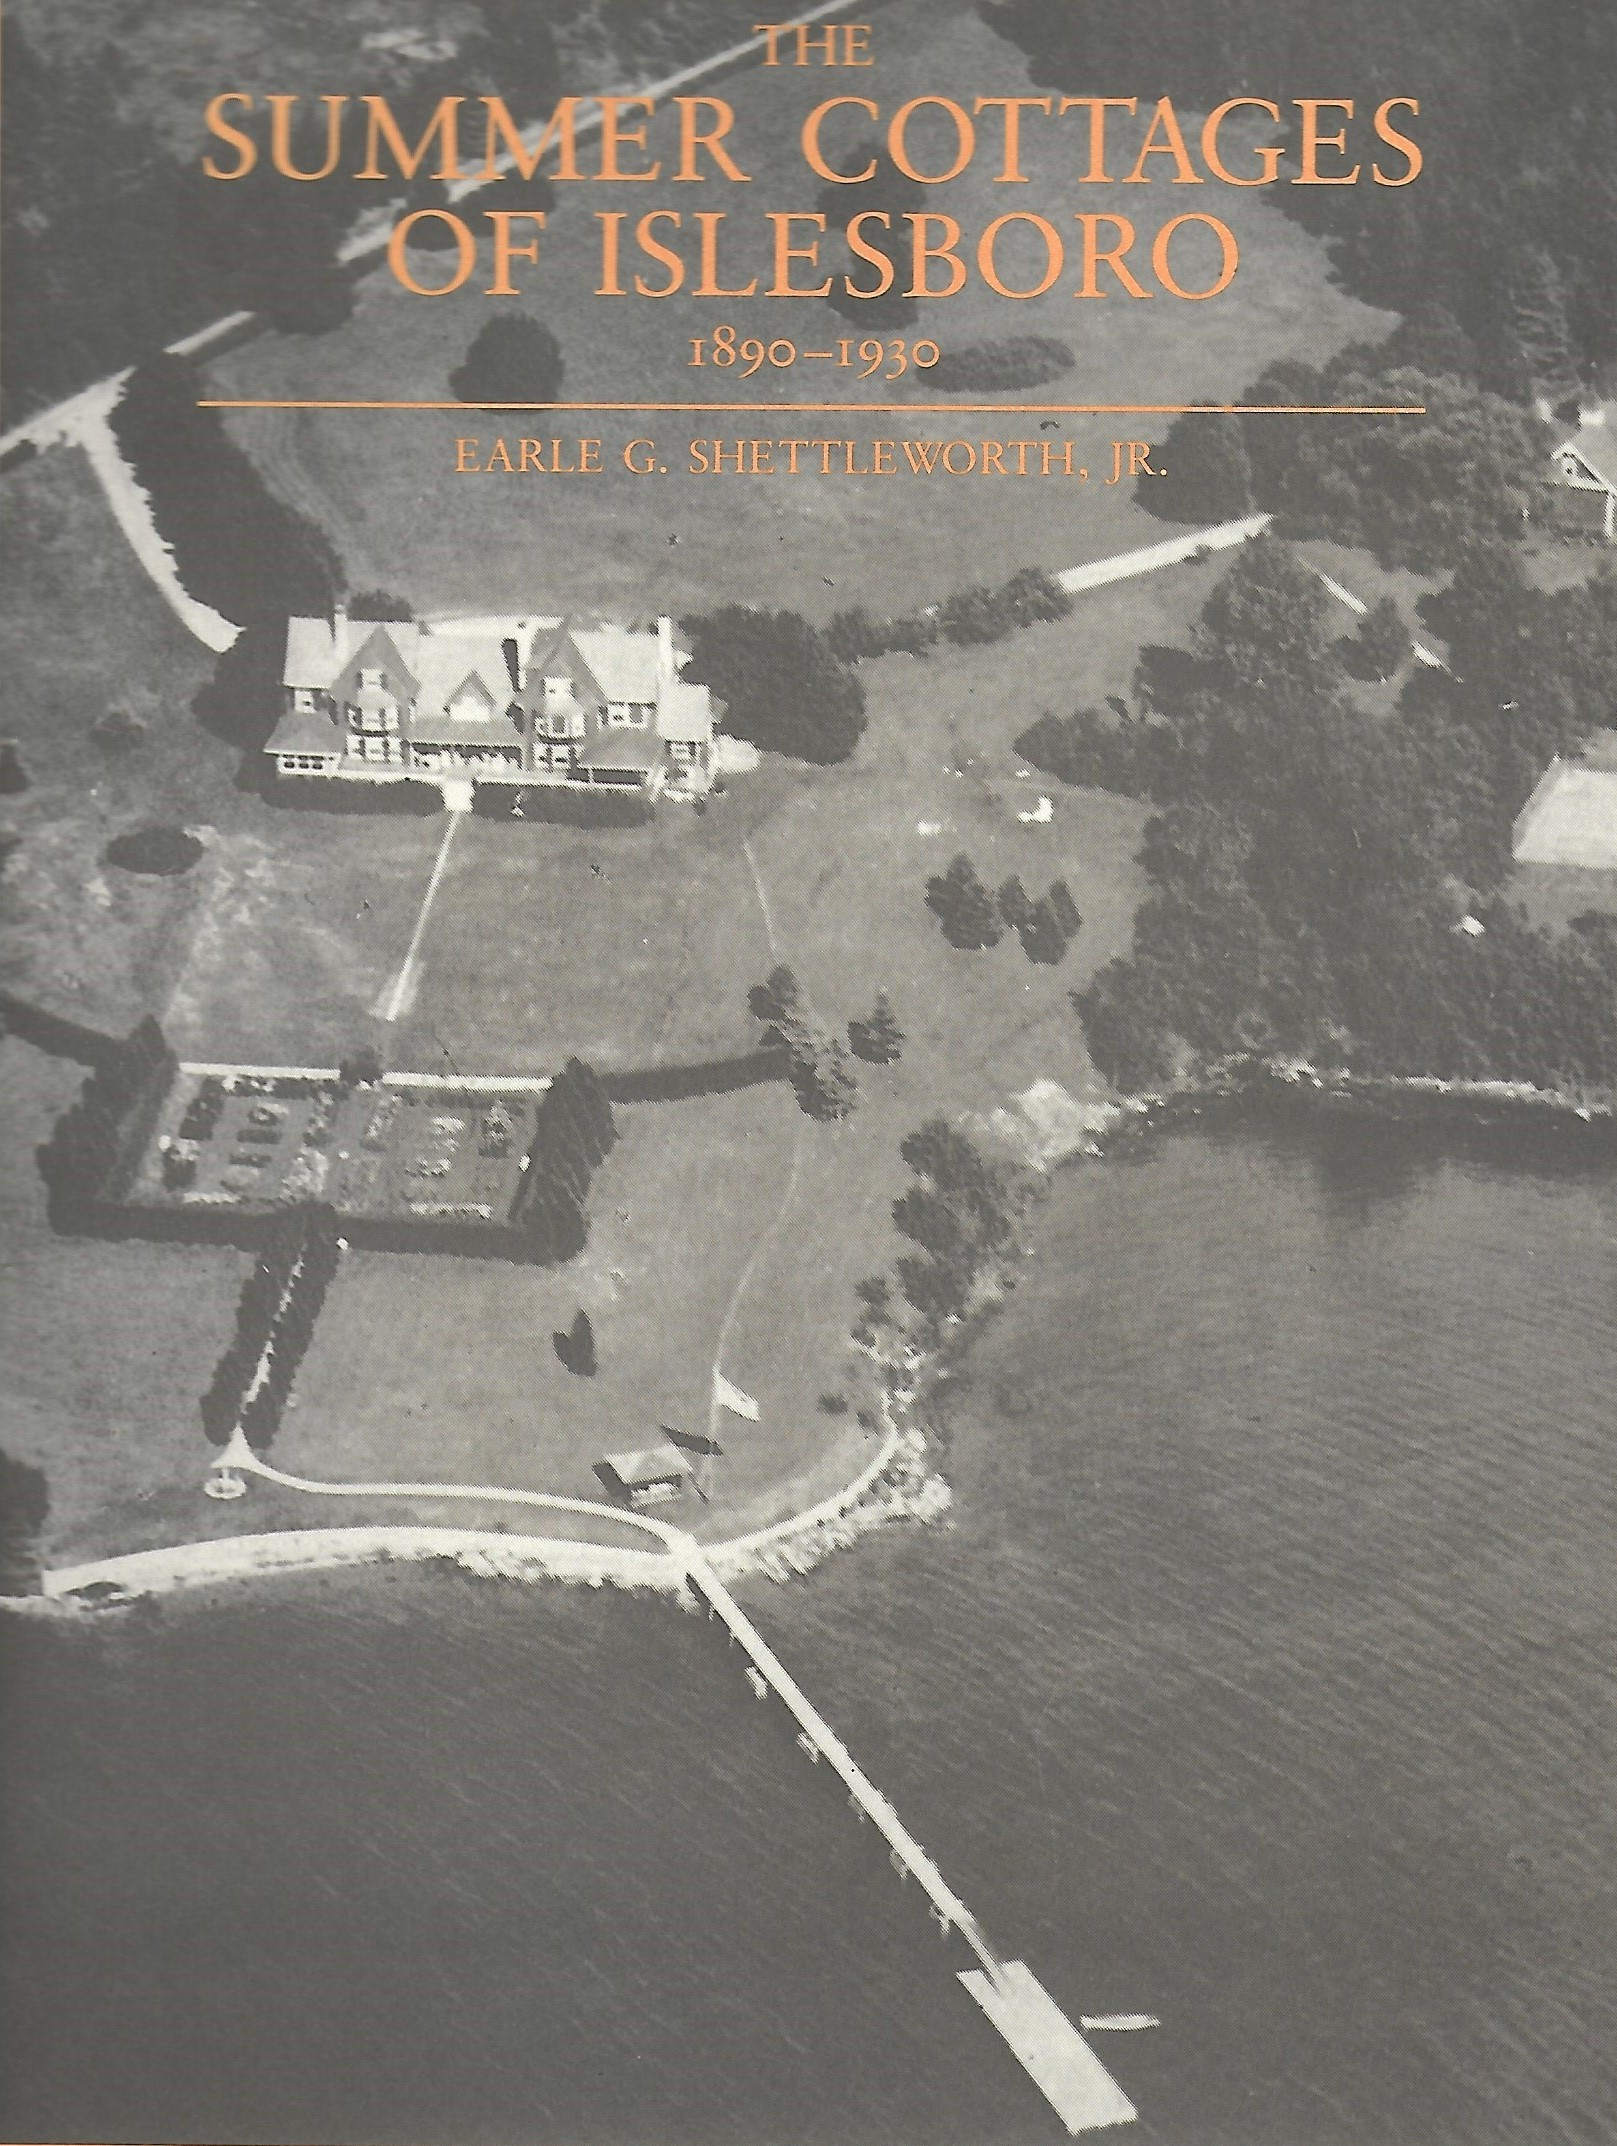 - Published by the Islesboro Historical Society on its 25th anniversary as its contribution to the town's bicentennial, this new book provided the first in-depth look at the island's golden era of summer cottages. Illustrated with old photographs and architectural drawings as well as recent views.Author: Earle G. Shettleworth, Jr.Price: $28.44Plus Maine Sales Tax $1.56